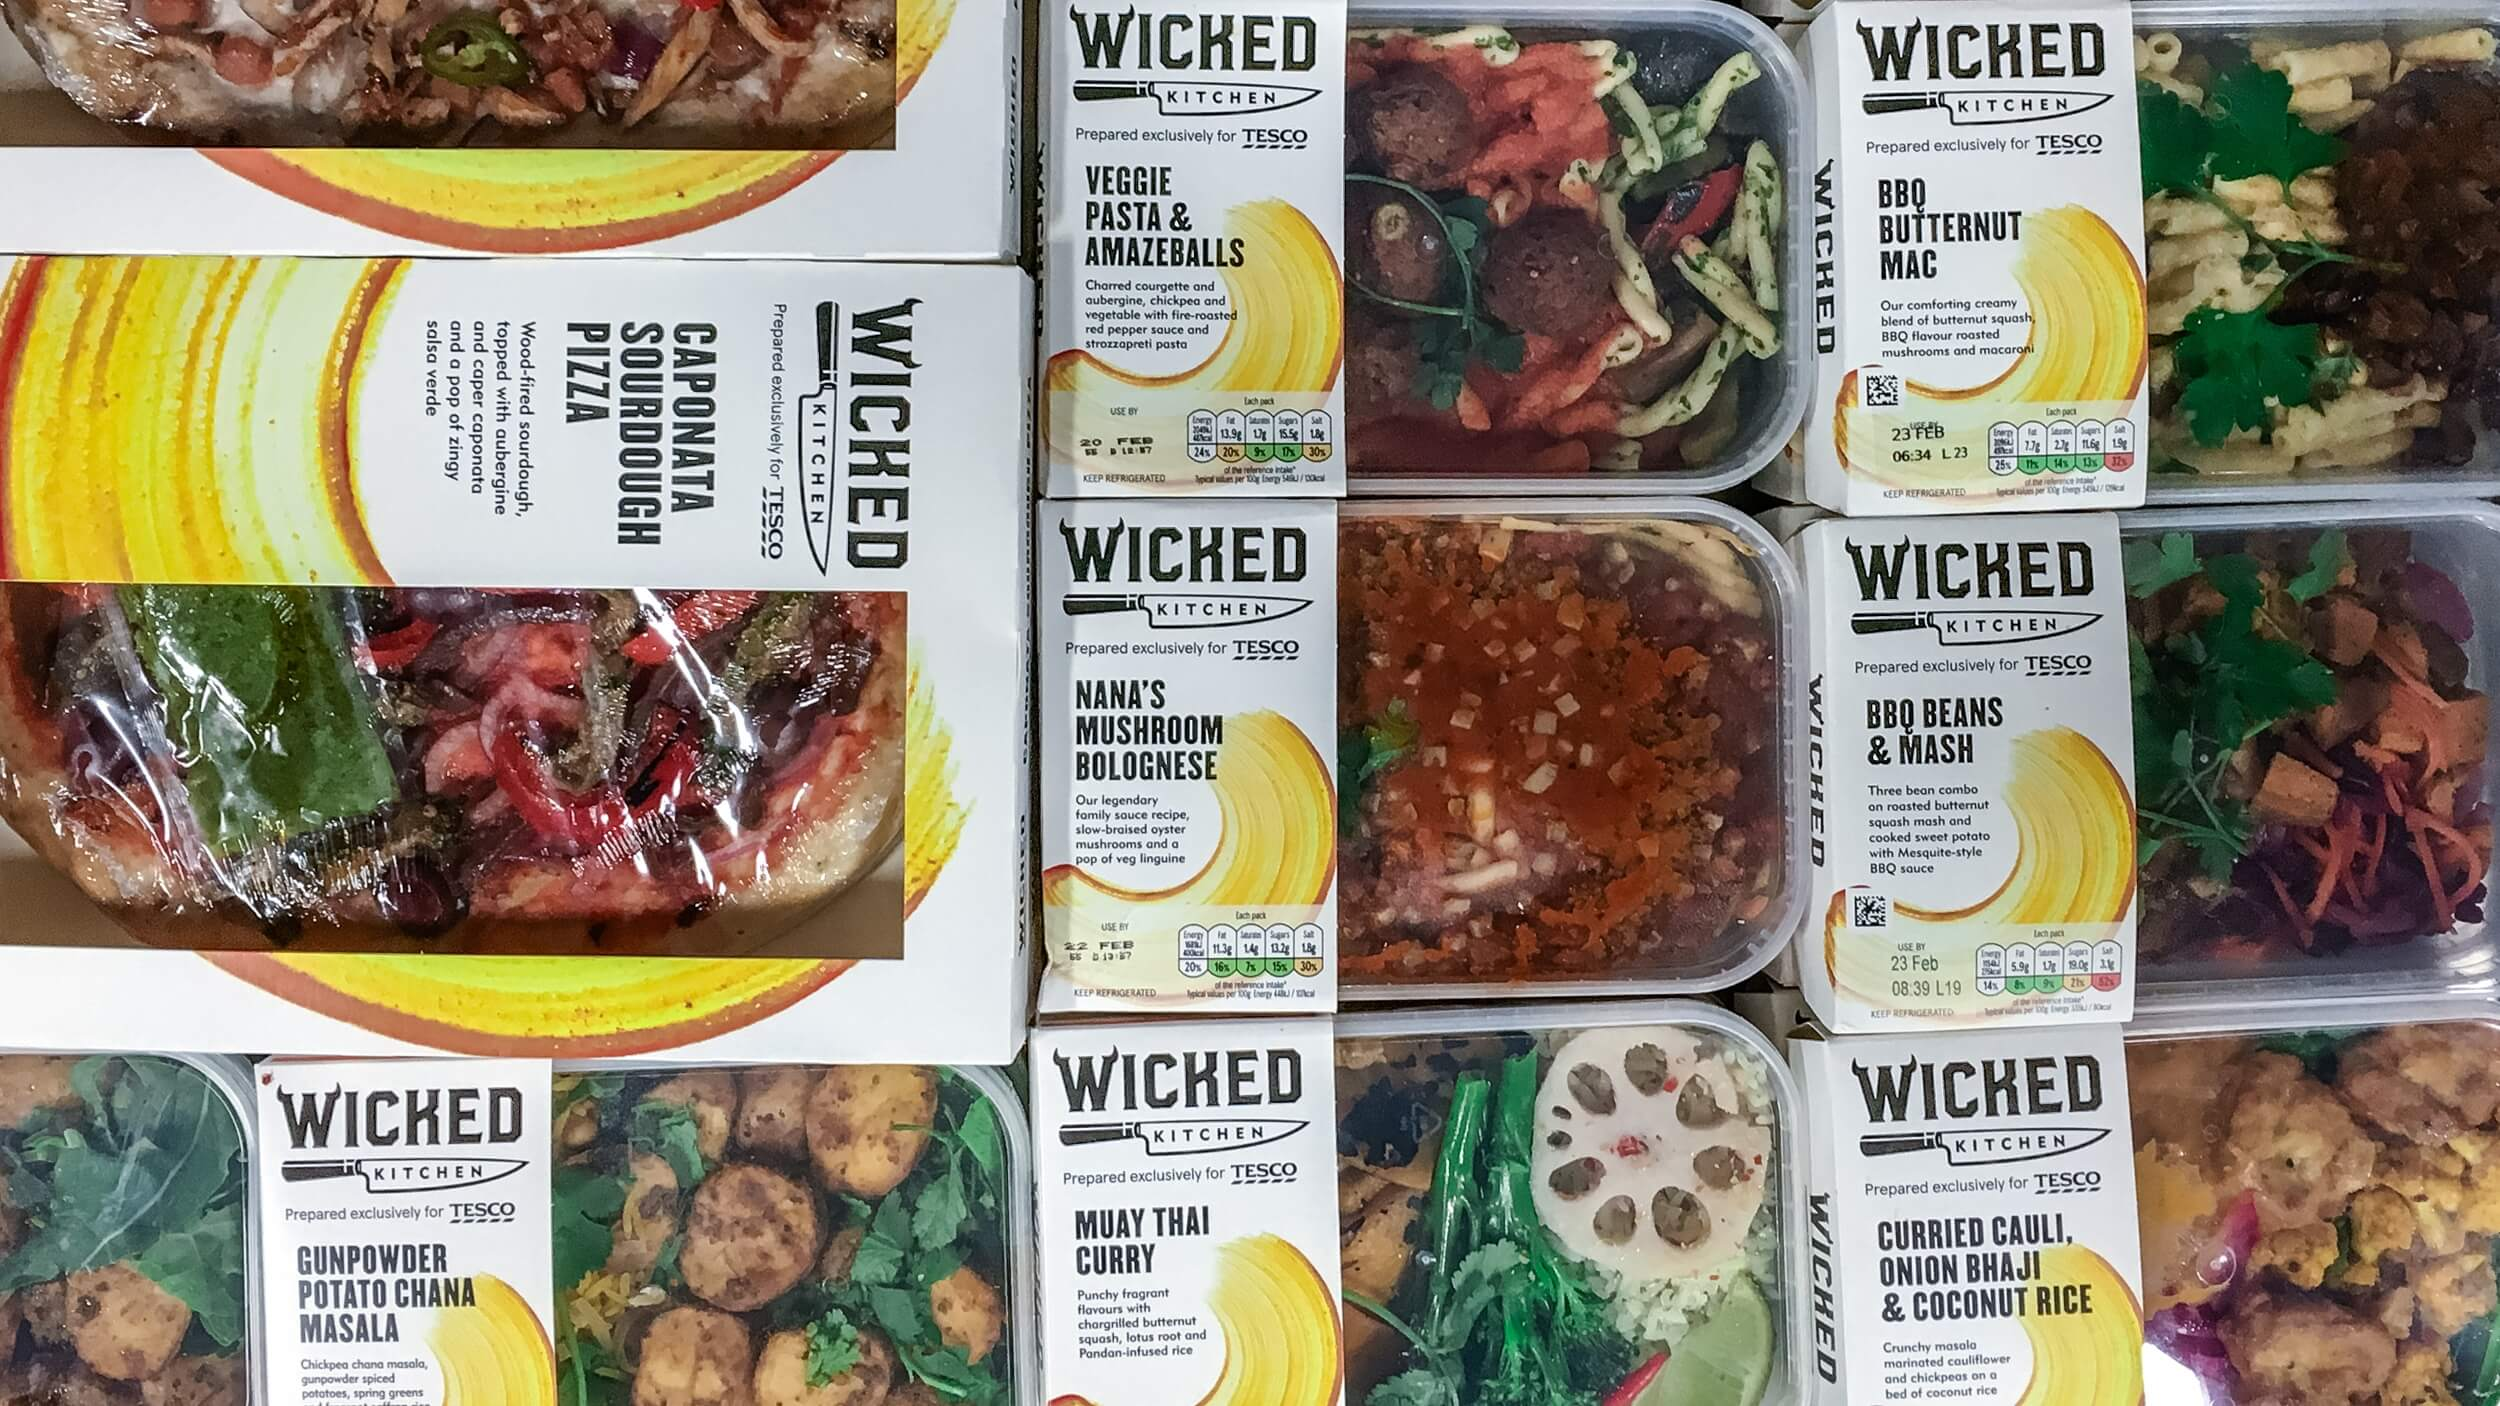 Tesco Sold Over 2.5 Million Vegan Wicked Kitchen Ready Meals in the First 5 Months Since Launching